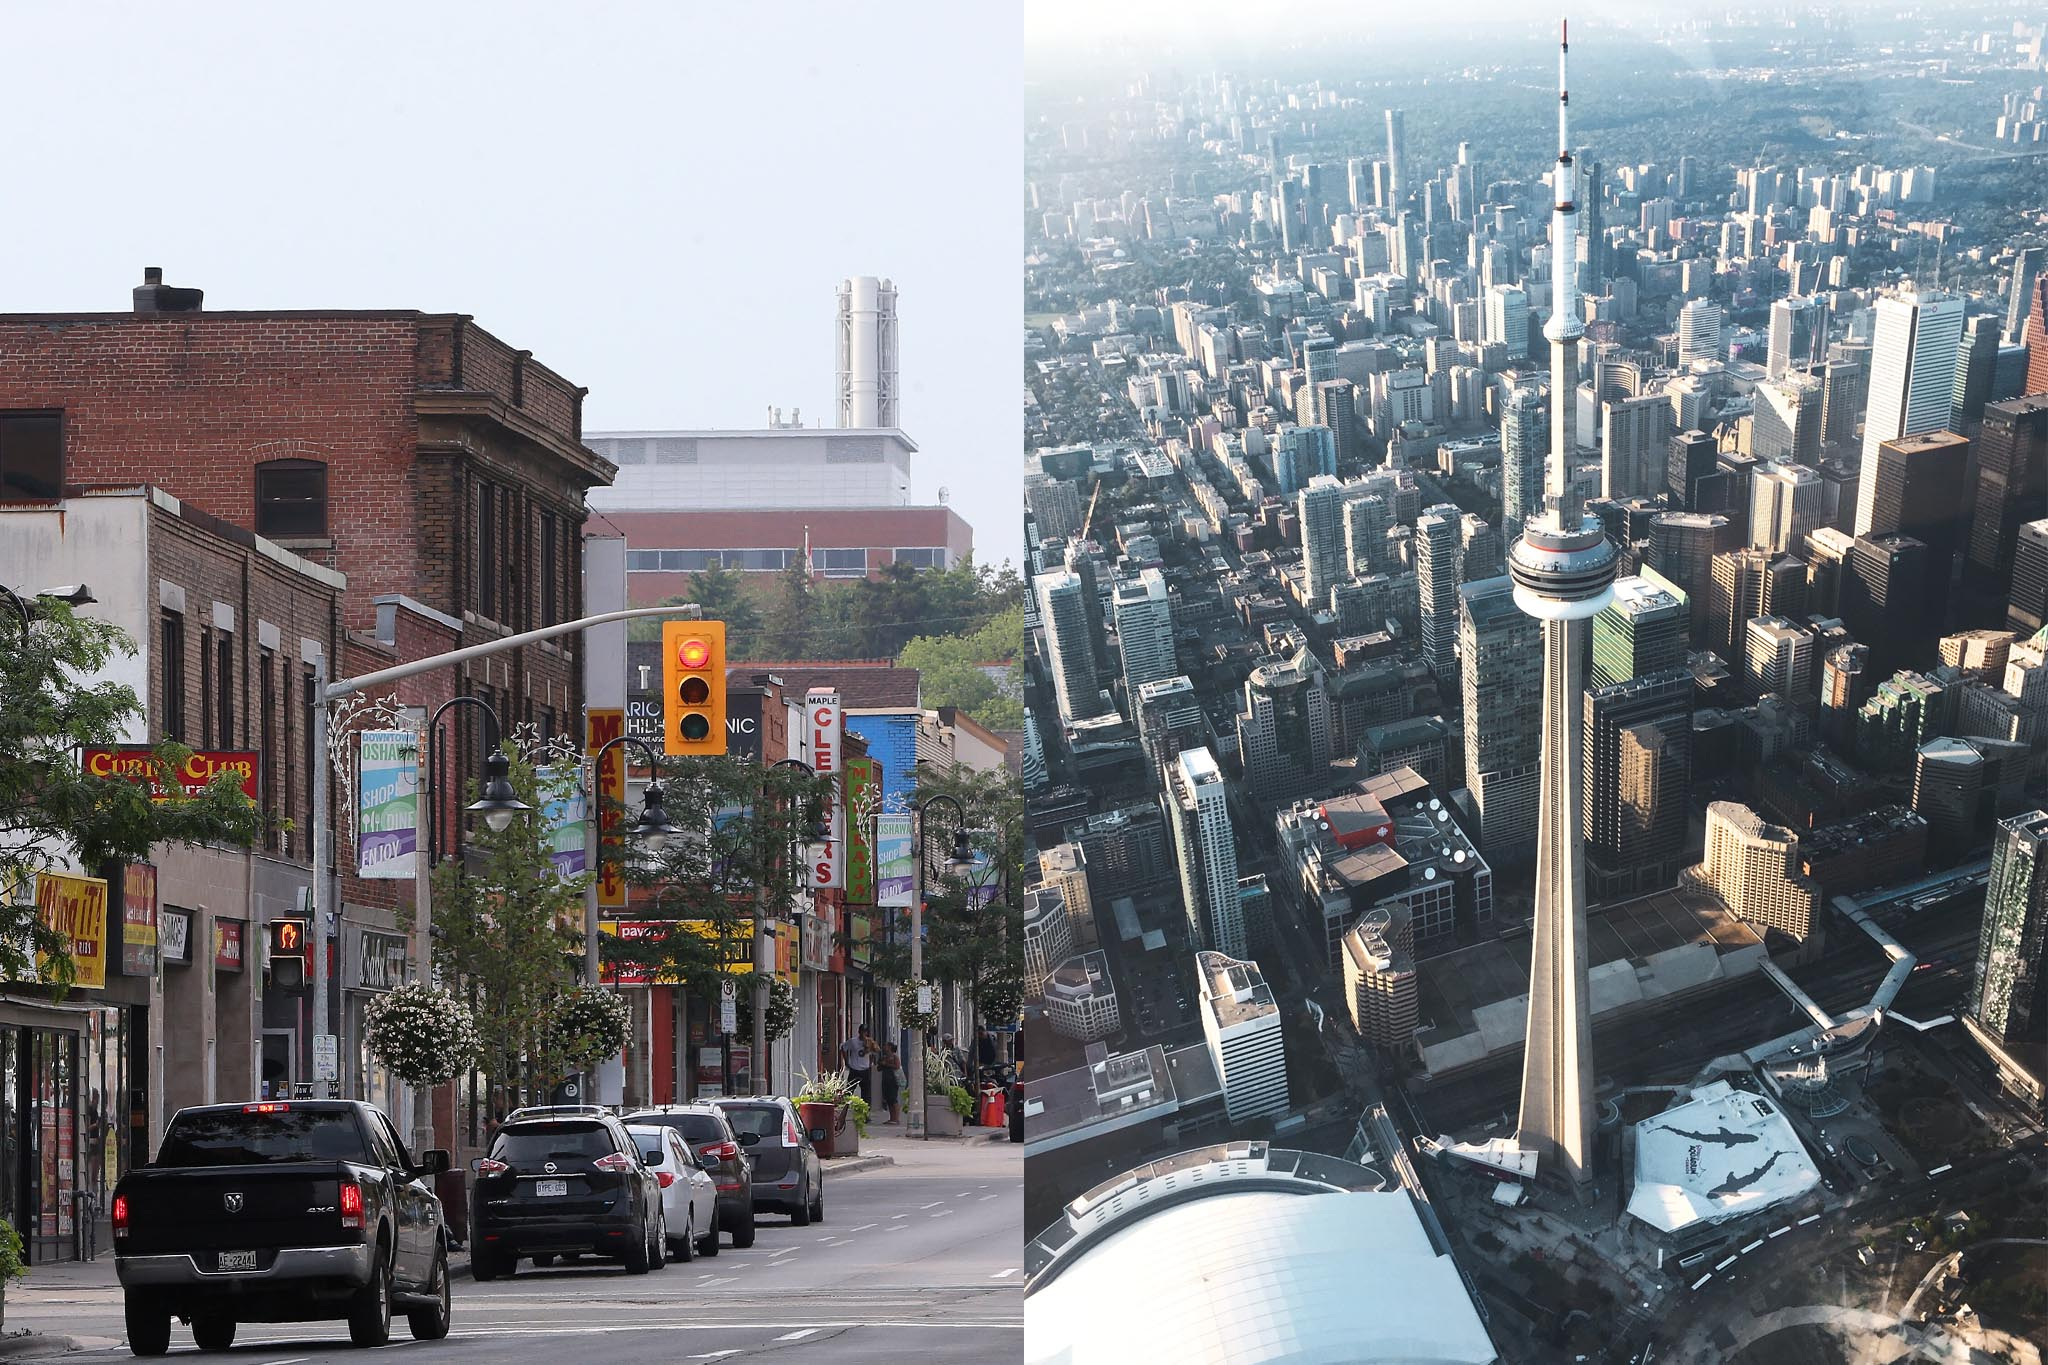 Fixing urban-rural economic disparity a laudable goal: U of T's Sean Speer in the Globe and Mail